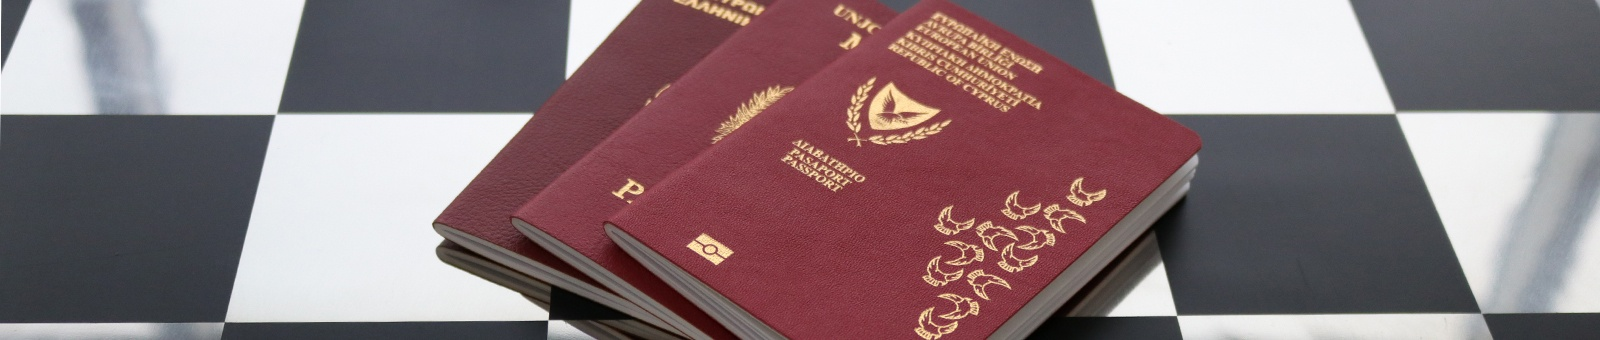 How to Become an EU Citizen, Cyprus Passport, Savory & Partners - Second Citizenship By Investment